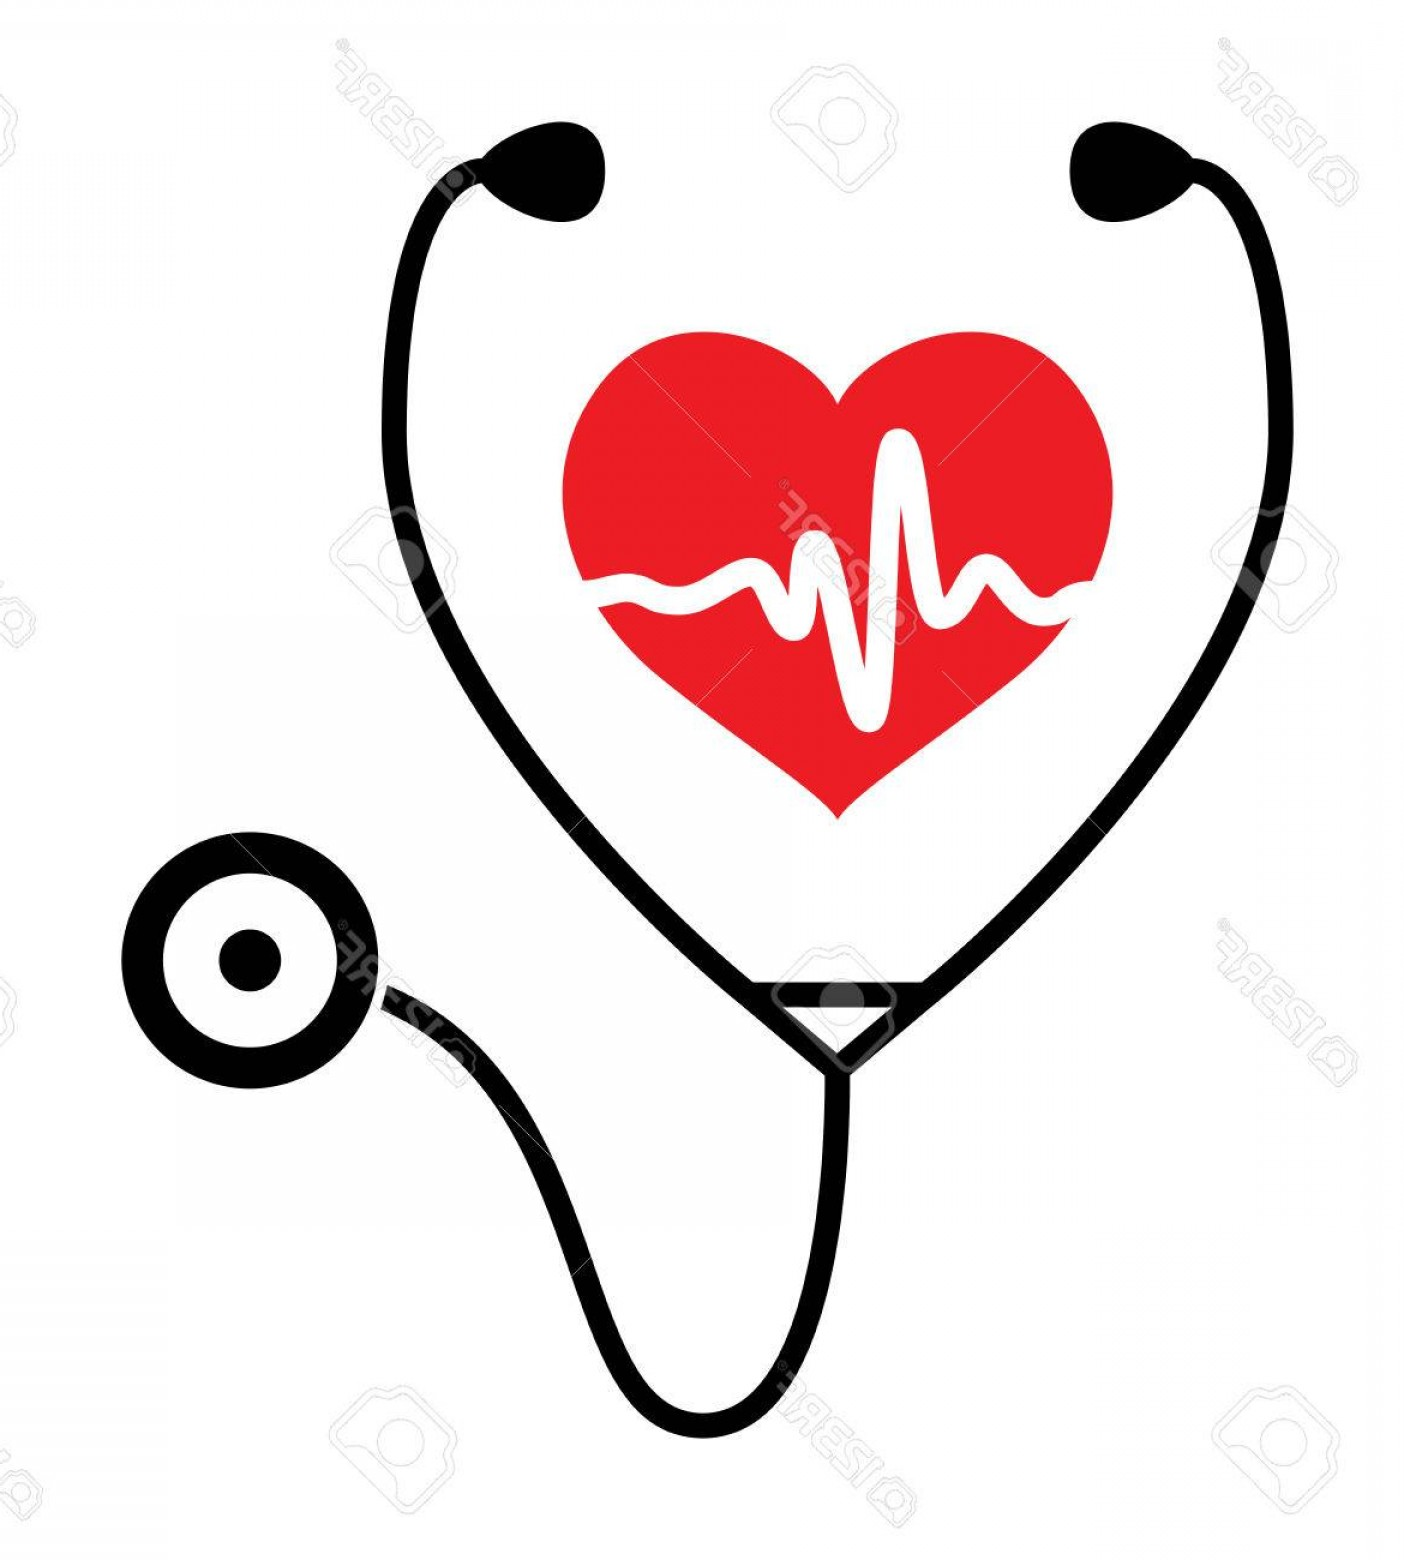 Stethoscope With Heart Vector Art: Photostock Vector Symbol Of Medical Exam Of Heart Health And Heartbeat With Stethoscope